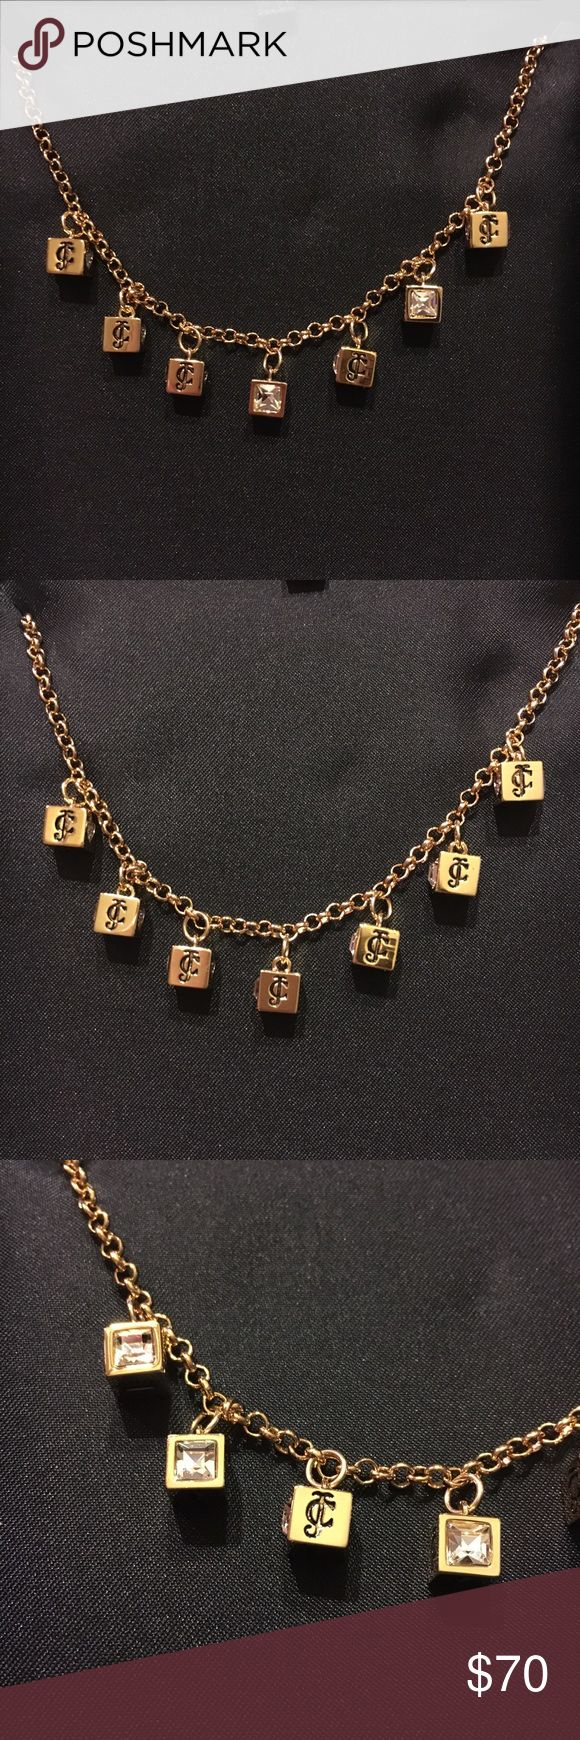 NWT Juicy Couture Necklace - NWT Juicy Couture Monogrammed Necklace     - Gold chain necklace with monogram cube pendants. One side of cube is a diamond and the other is the juicy couture symbol.    - 16 inches long with 3 inch extendable length    - NEW WITH TAGS and comes in original box Juicy Couture Jewelry Necklaces